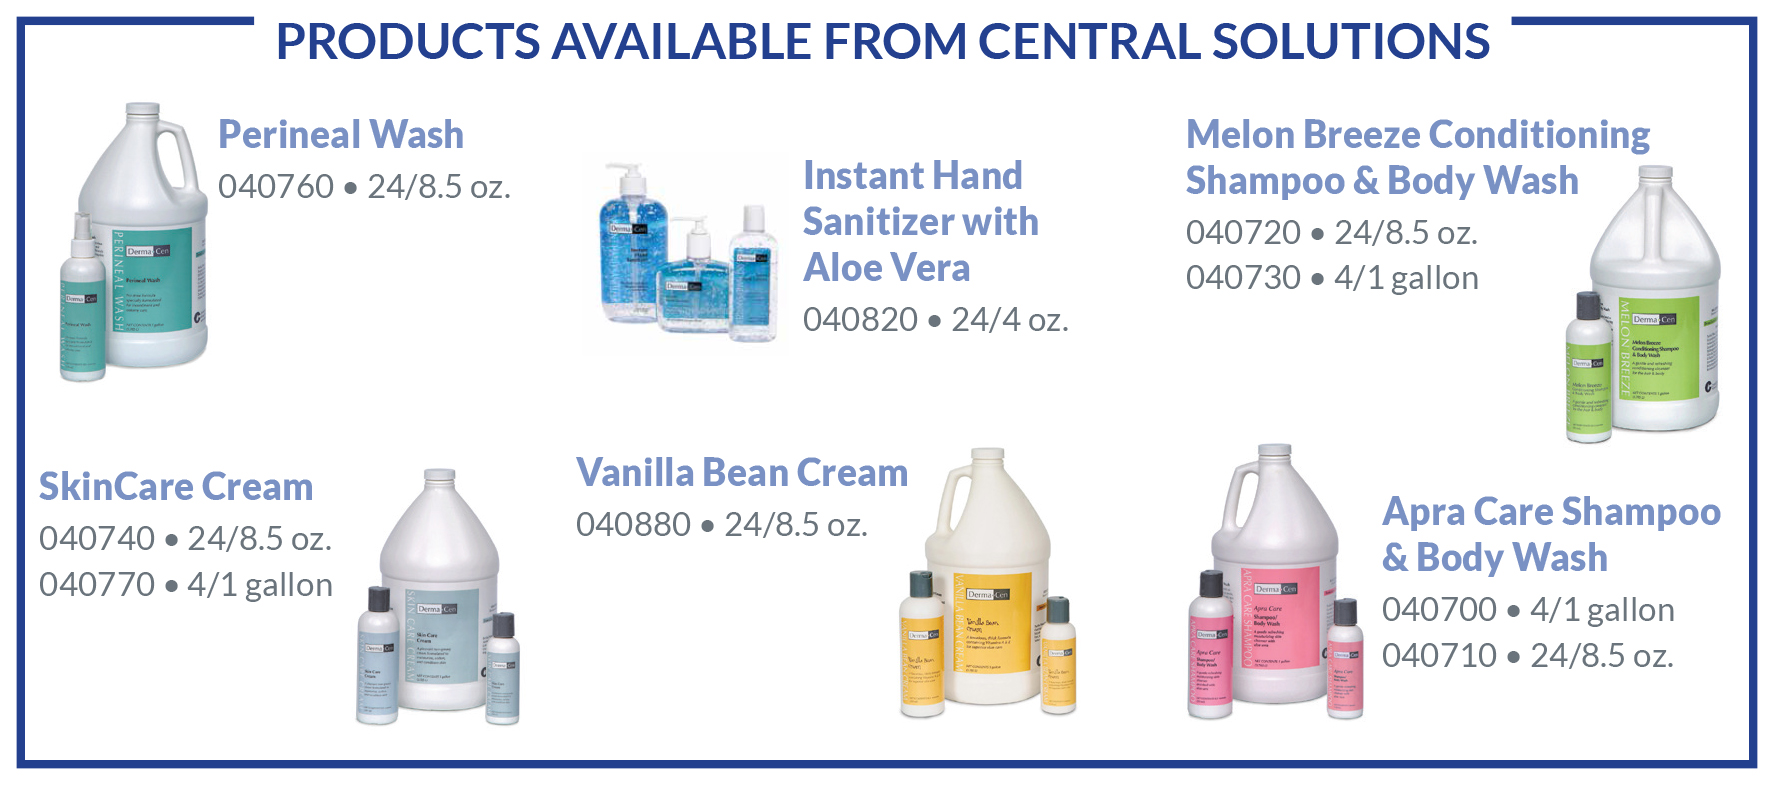 CentralSolutions_Products